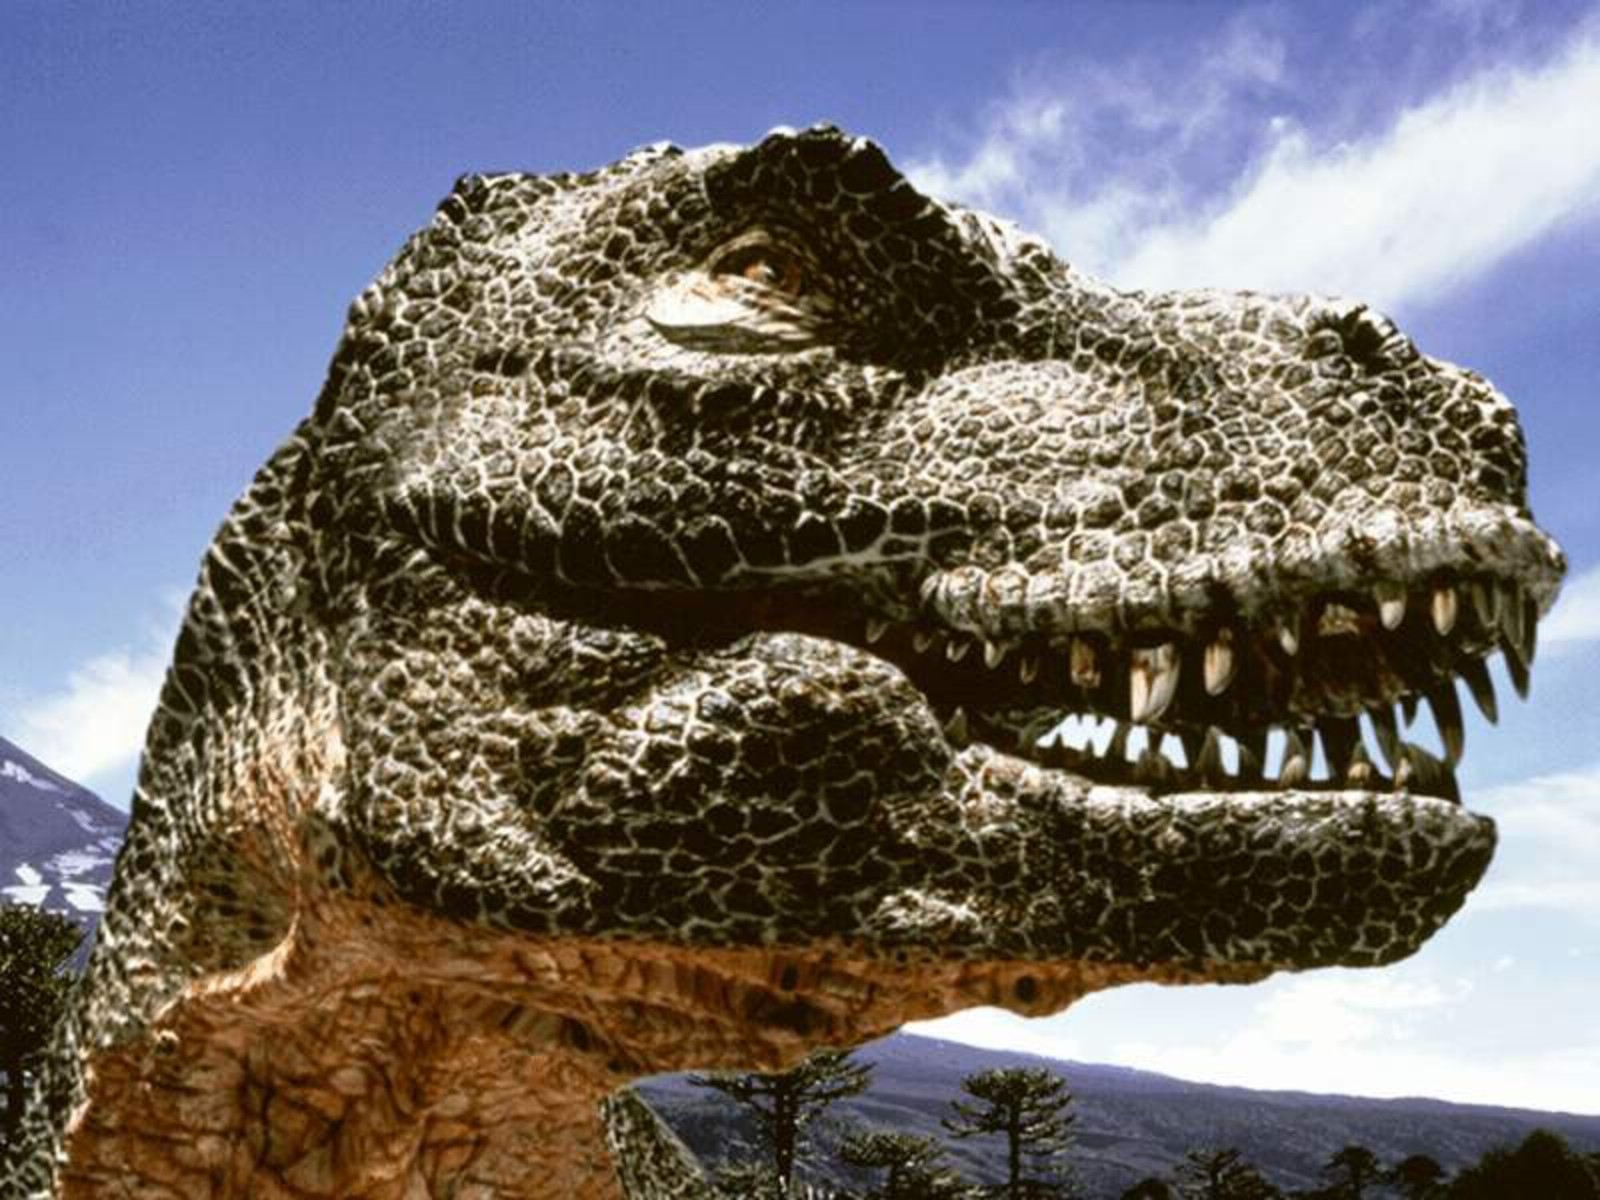 Face Of Dinosaur Closer View Hd Picture Download